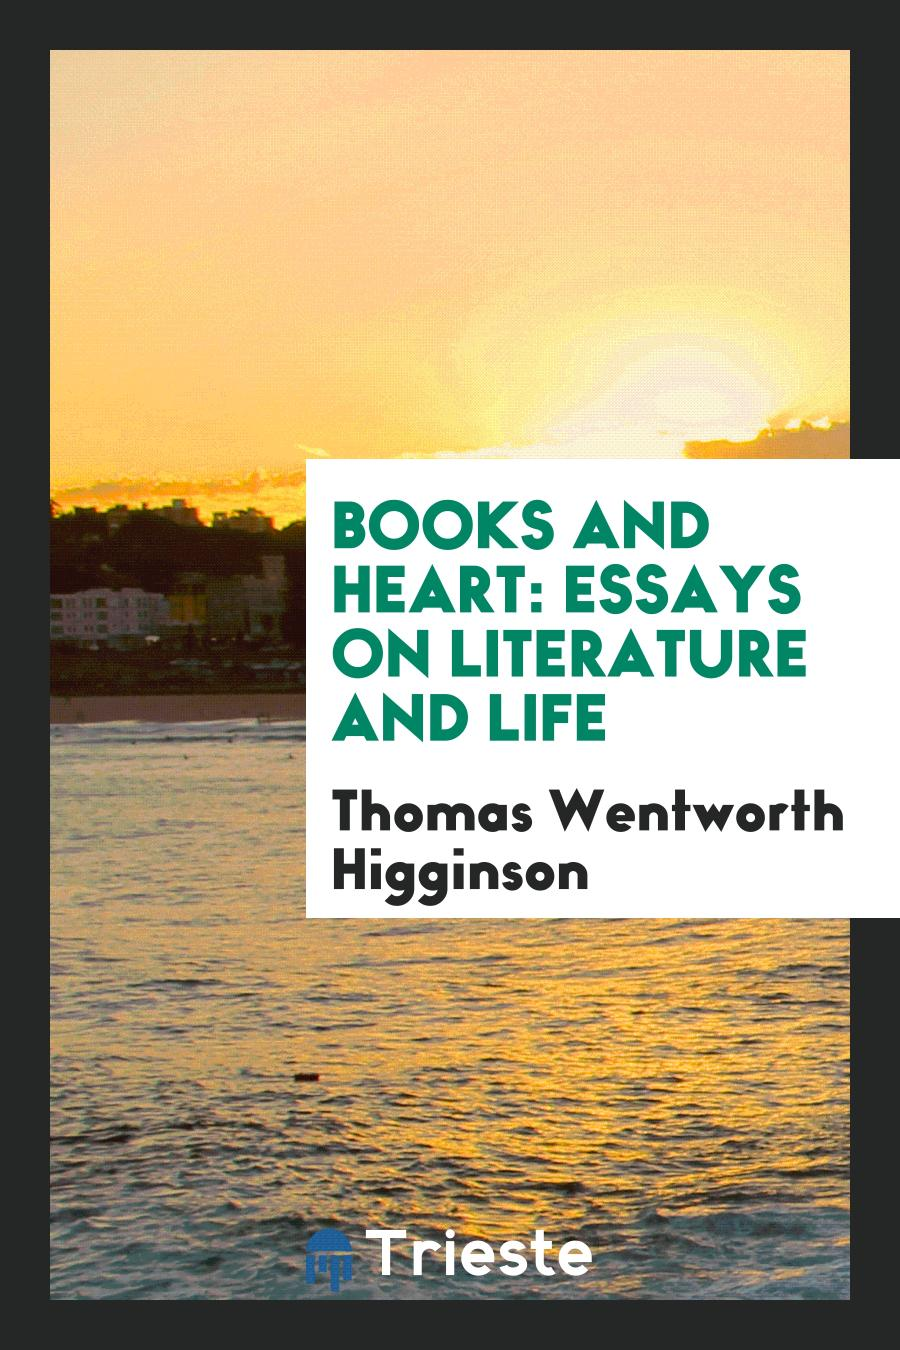 Books and Heart: Essays on Literature and Life